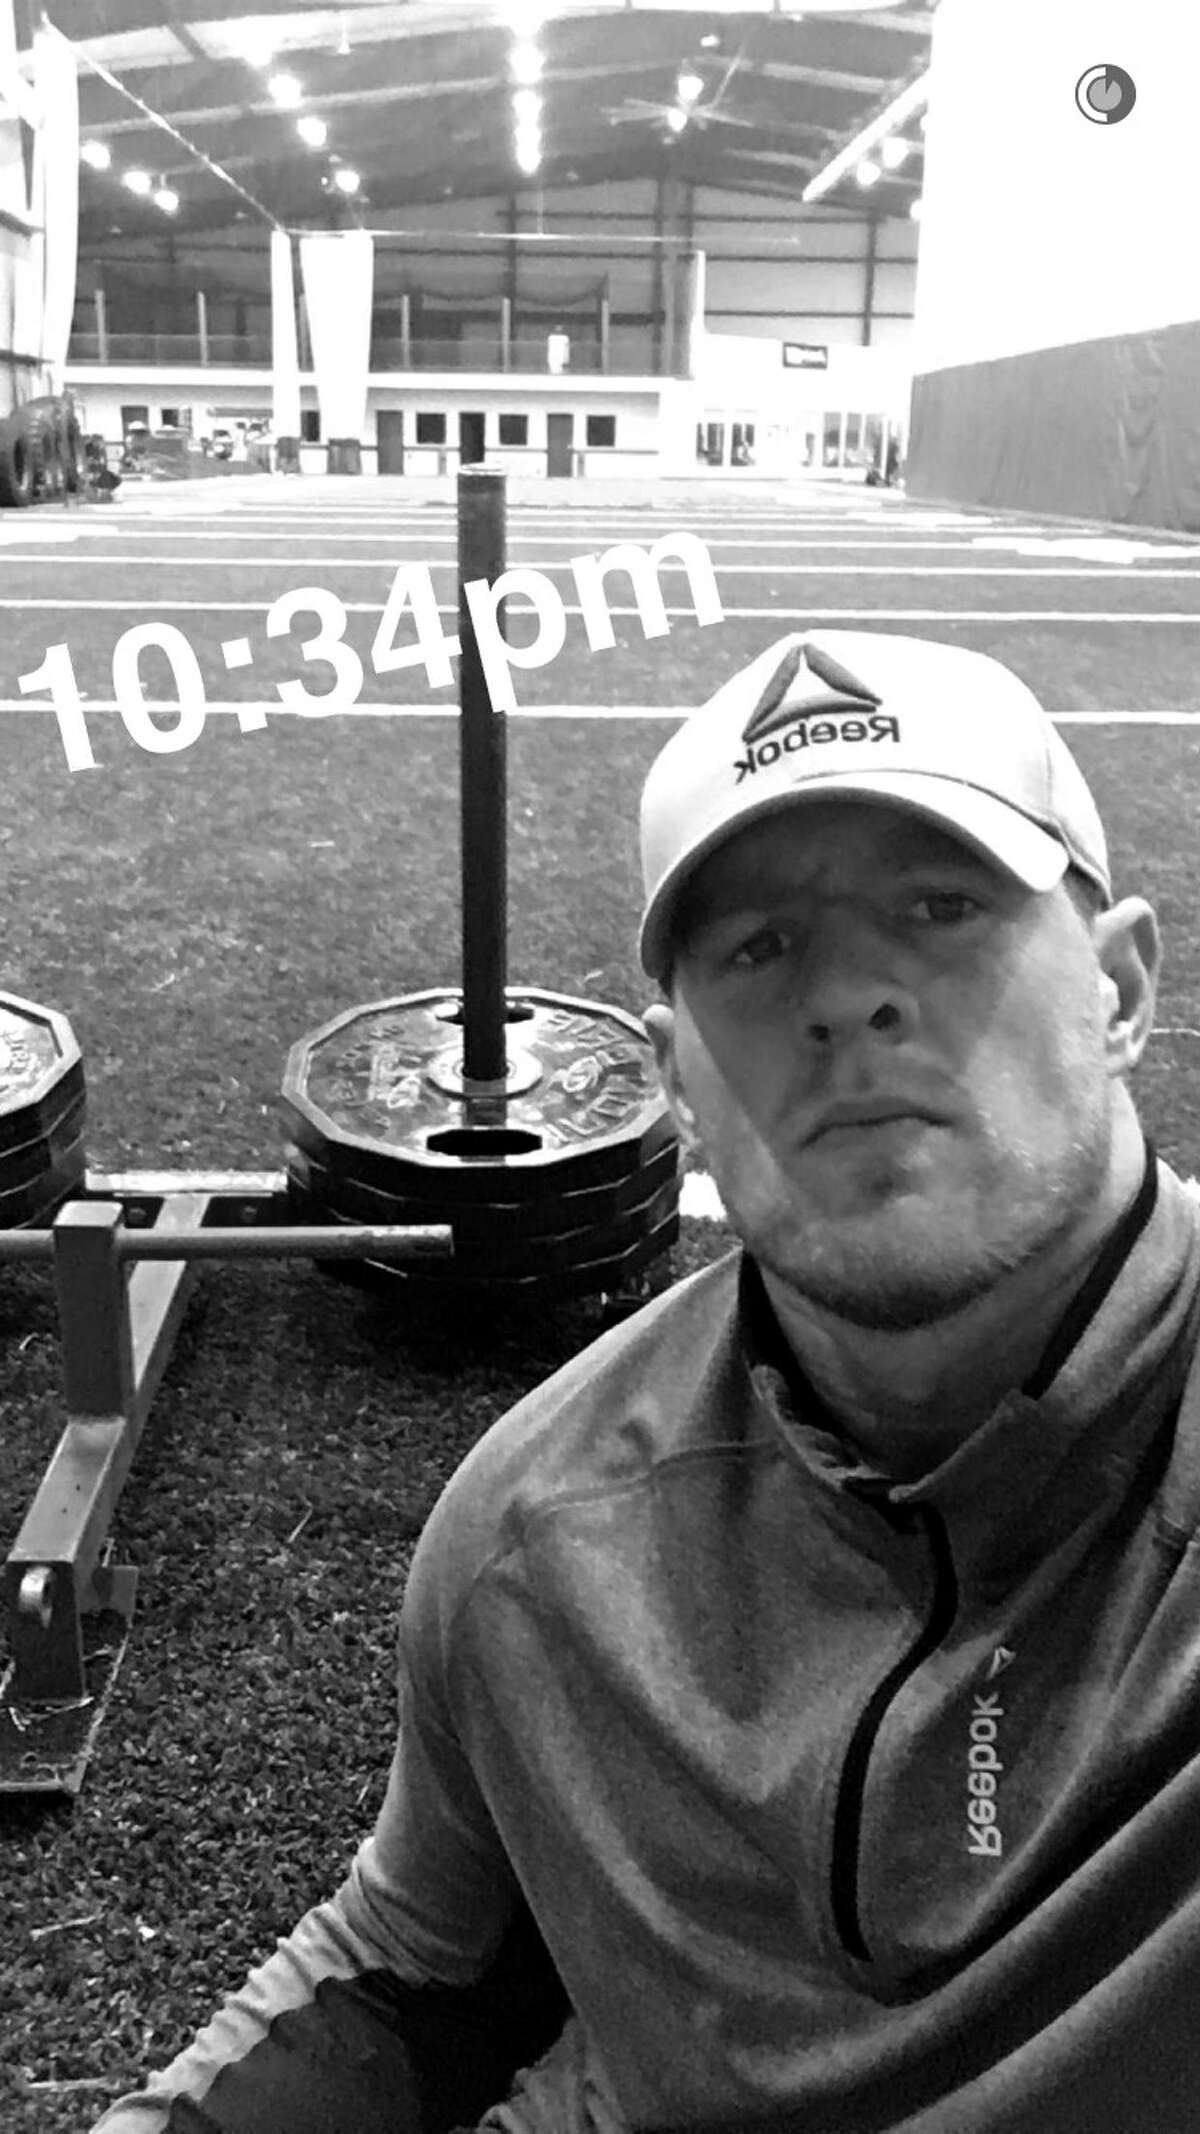 Houston Texans' star J.J. Watt posted a video of him in his Wisconsin gym at 10:34 p.m. Wednesday night.